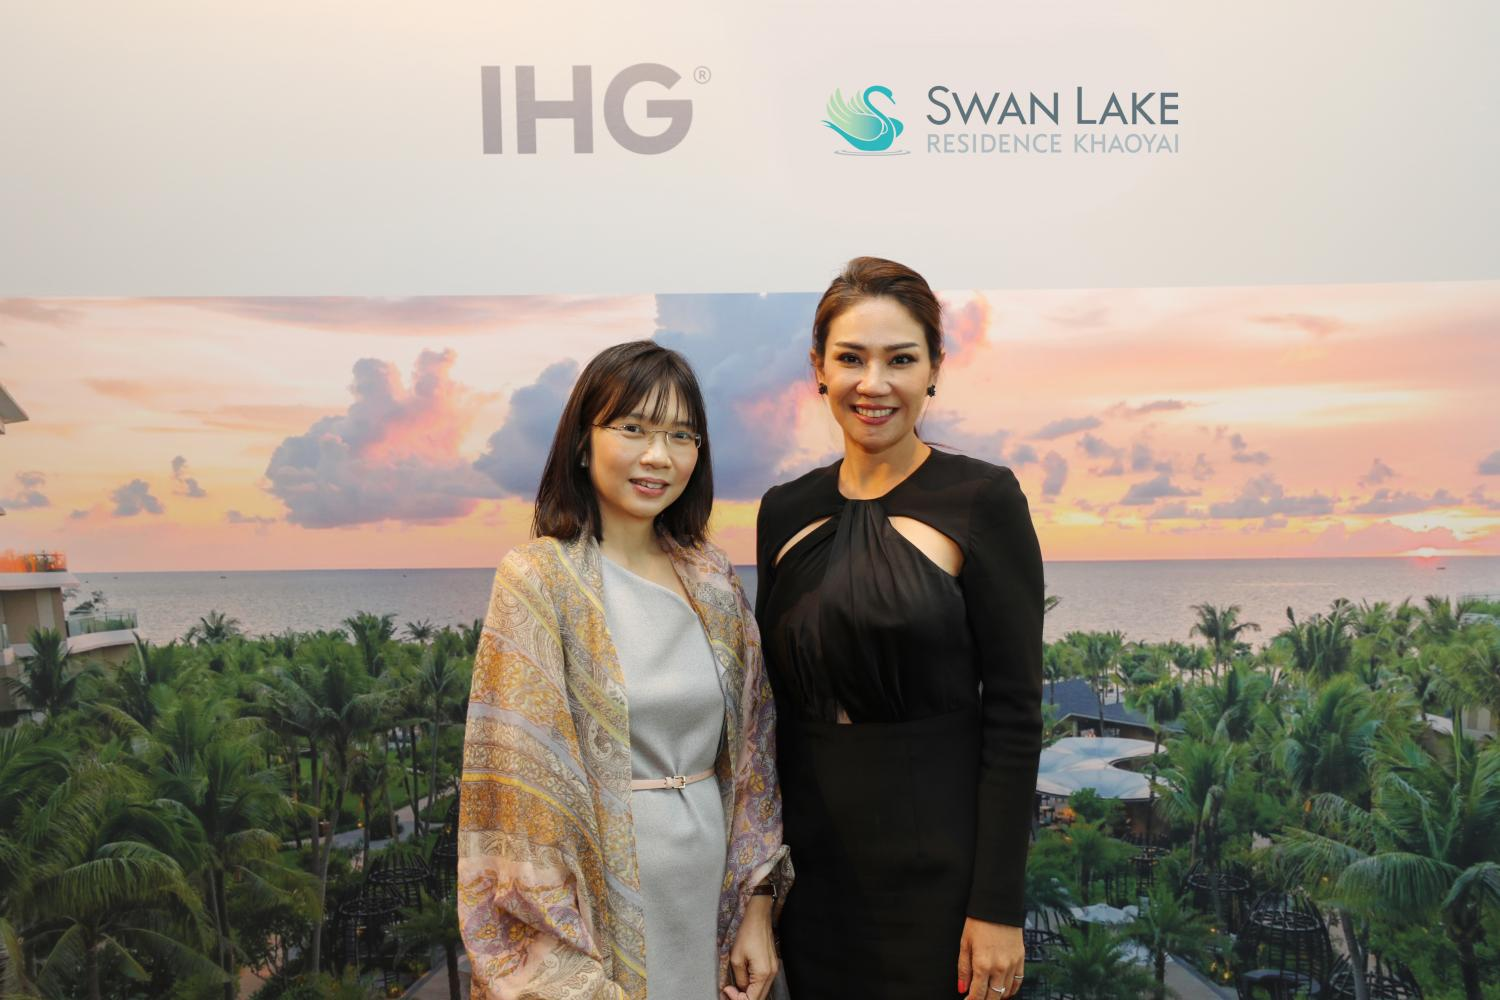 IHG's Ms Lim, left, and Ms Rena both appreciate the opportunities of mixed-use projects.